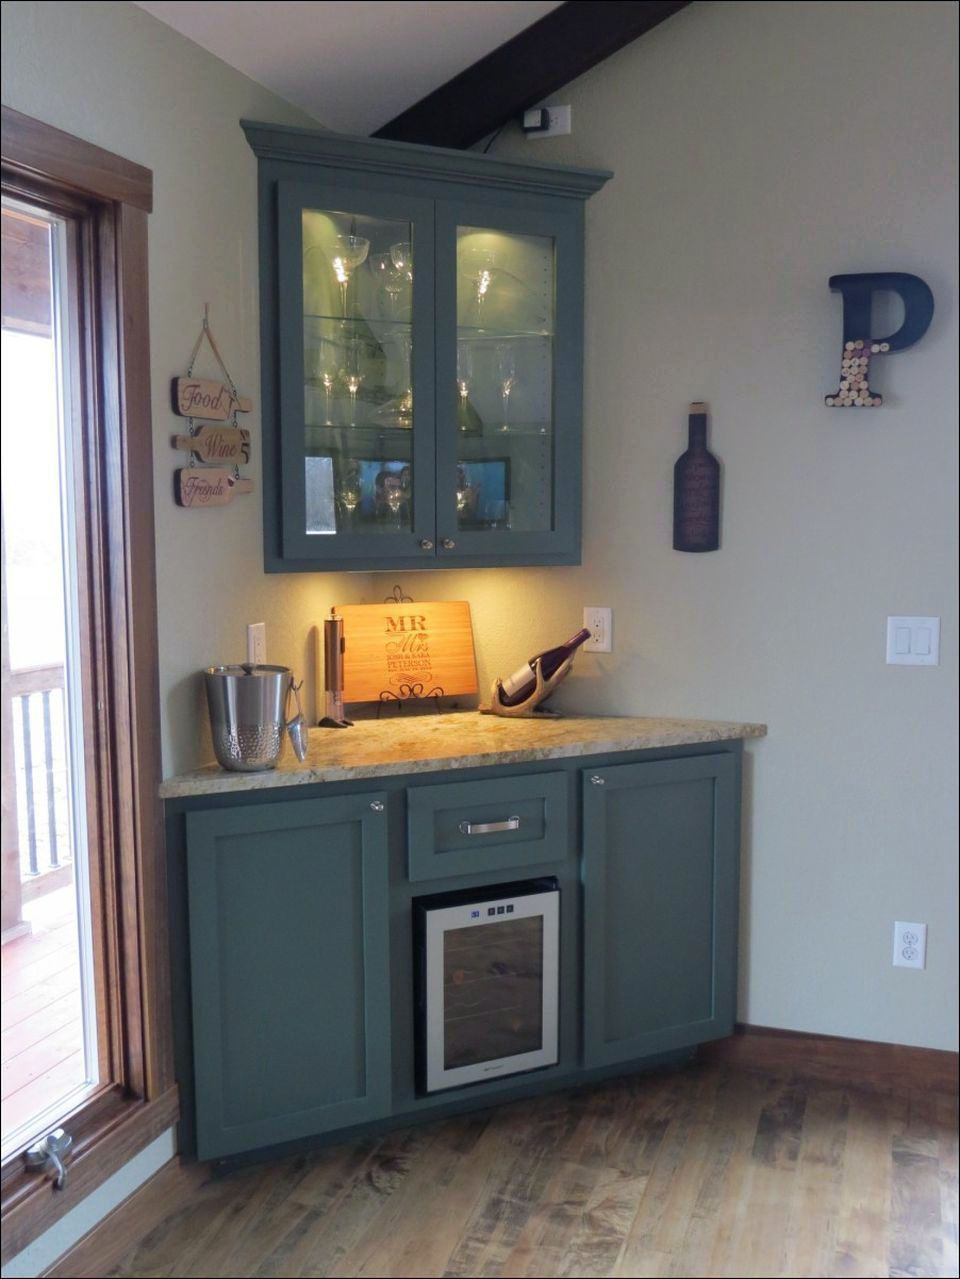 Kitchen Area In Residing Space With Club Counter Authentic